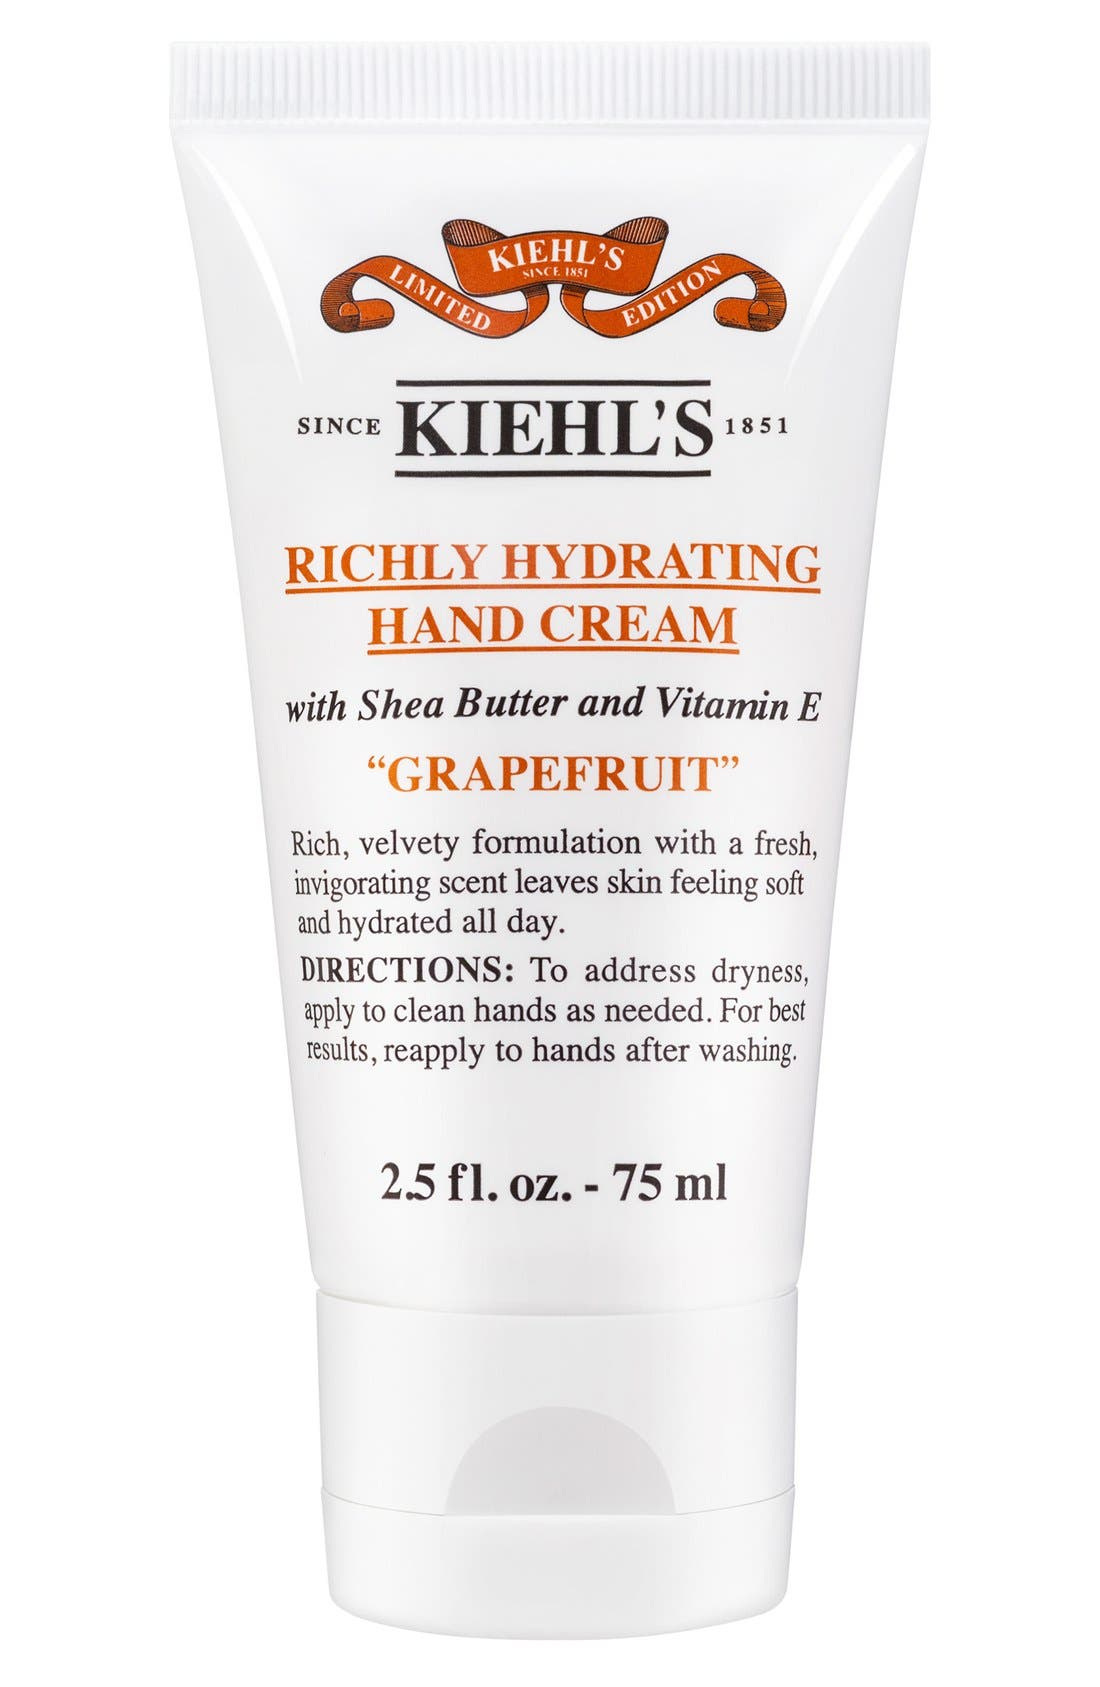 Kiehl's Since 1851 Grapefruit Richly Hydrating Scented Hand Cream